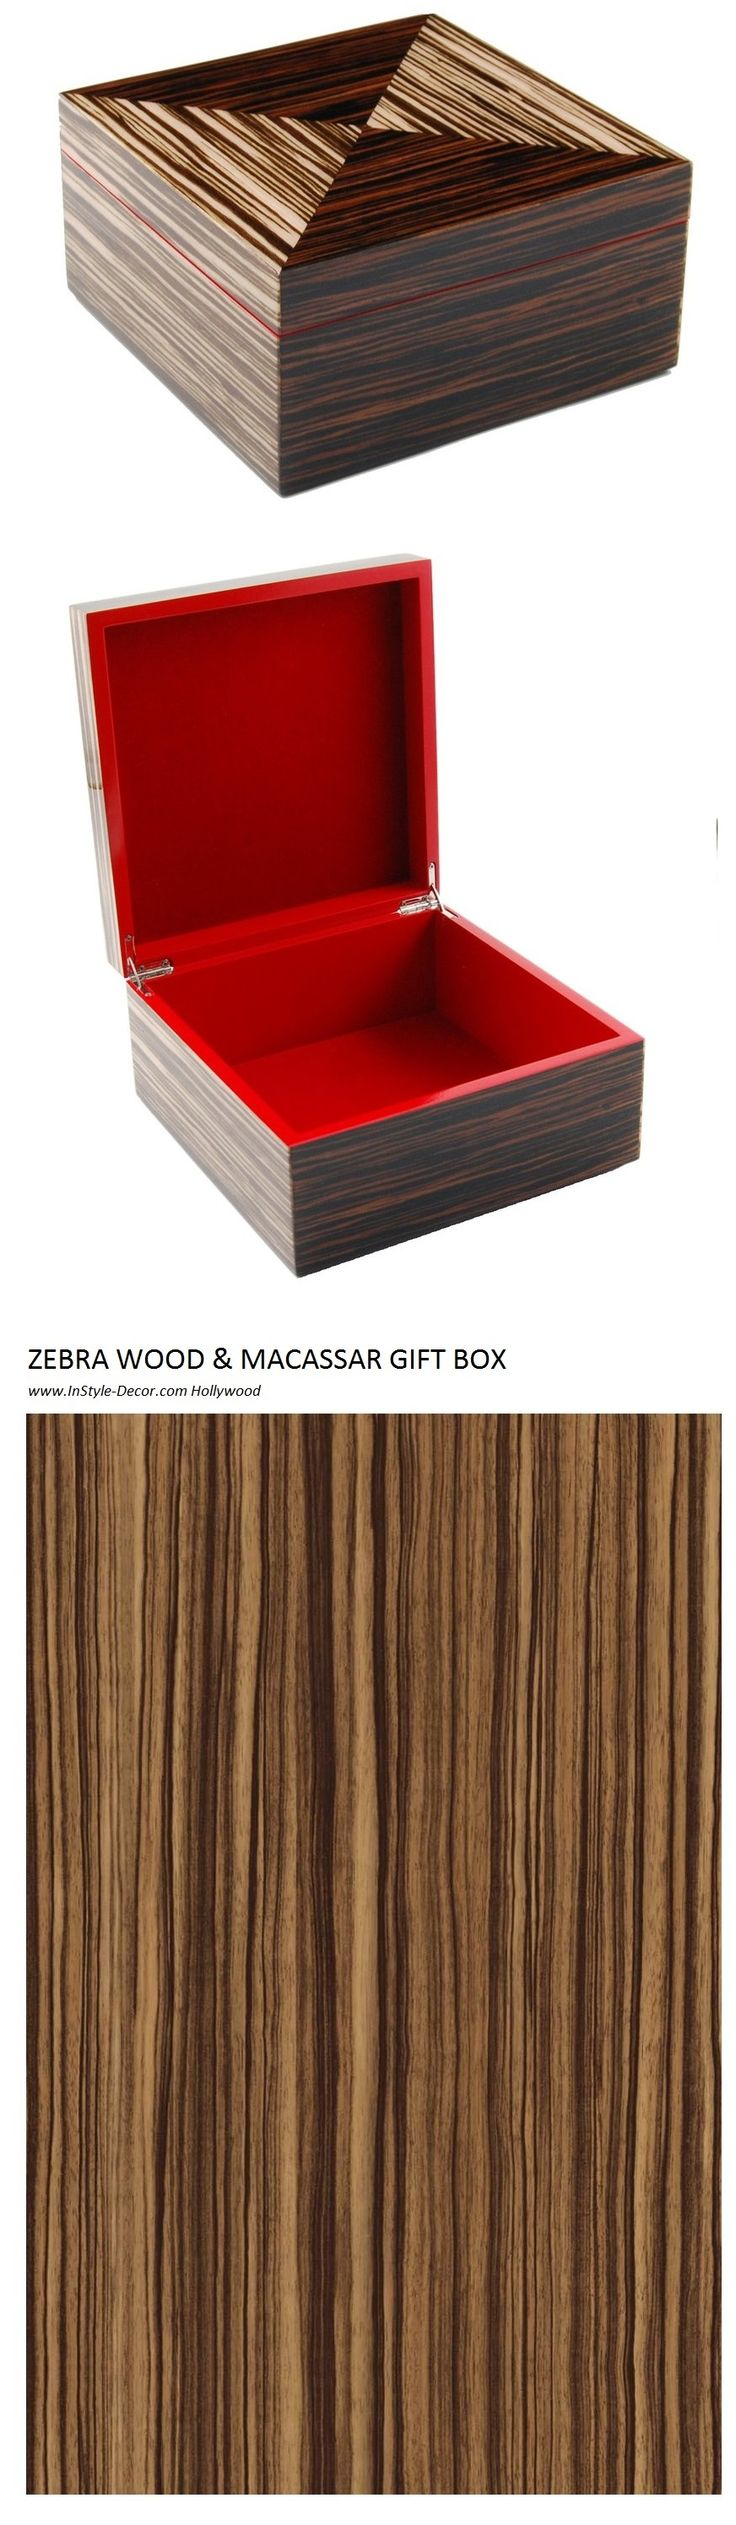 Gift Box   Gift Boxes   Gift Box Ideas   Desk Box   Box For Desk   Desk Boxes   Wooden Desk Boxes   Boxes For Desk   Wood Desk Boxes   Wooden Desk Box   Wood Desk Box   Stationery Box   Wood Stationery Boxes   Wood Stationery Box   Desk Organizer   Desk Organizers   Wood Desk Organizers   Wooden Desk Organizers   Wood Desk Organizer   Wooden Desk Organizer   Beautiful Gift Boxes, Desk Boxes Trending in HOLLYWOOD at: InStyle Decor http://www.instyle-decor.com/gift-box.html  Enjoy